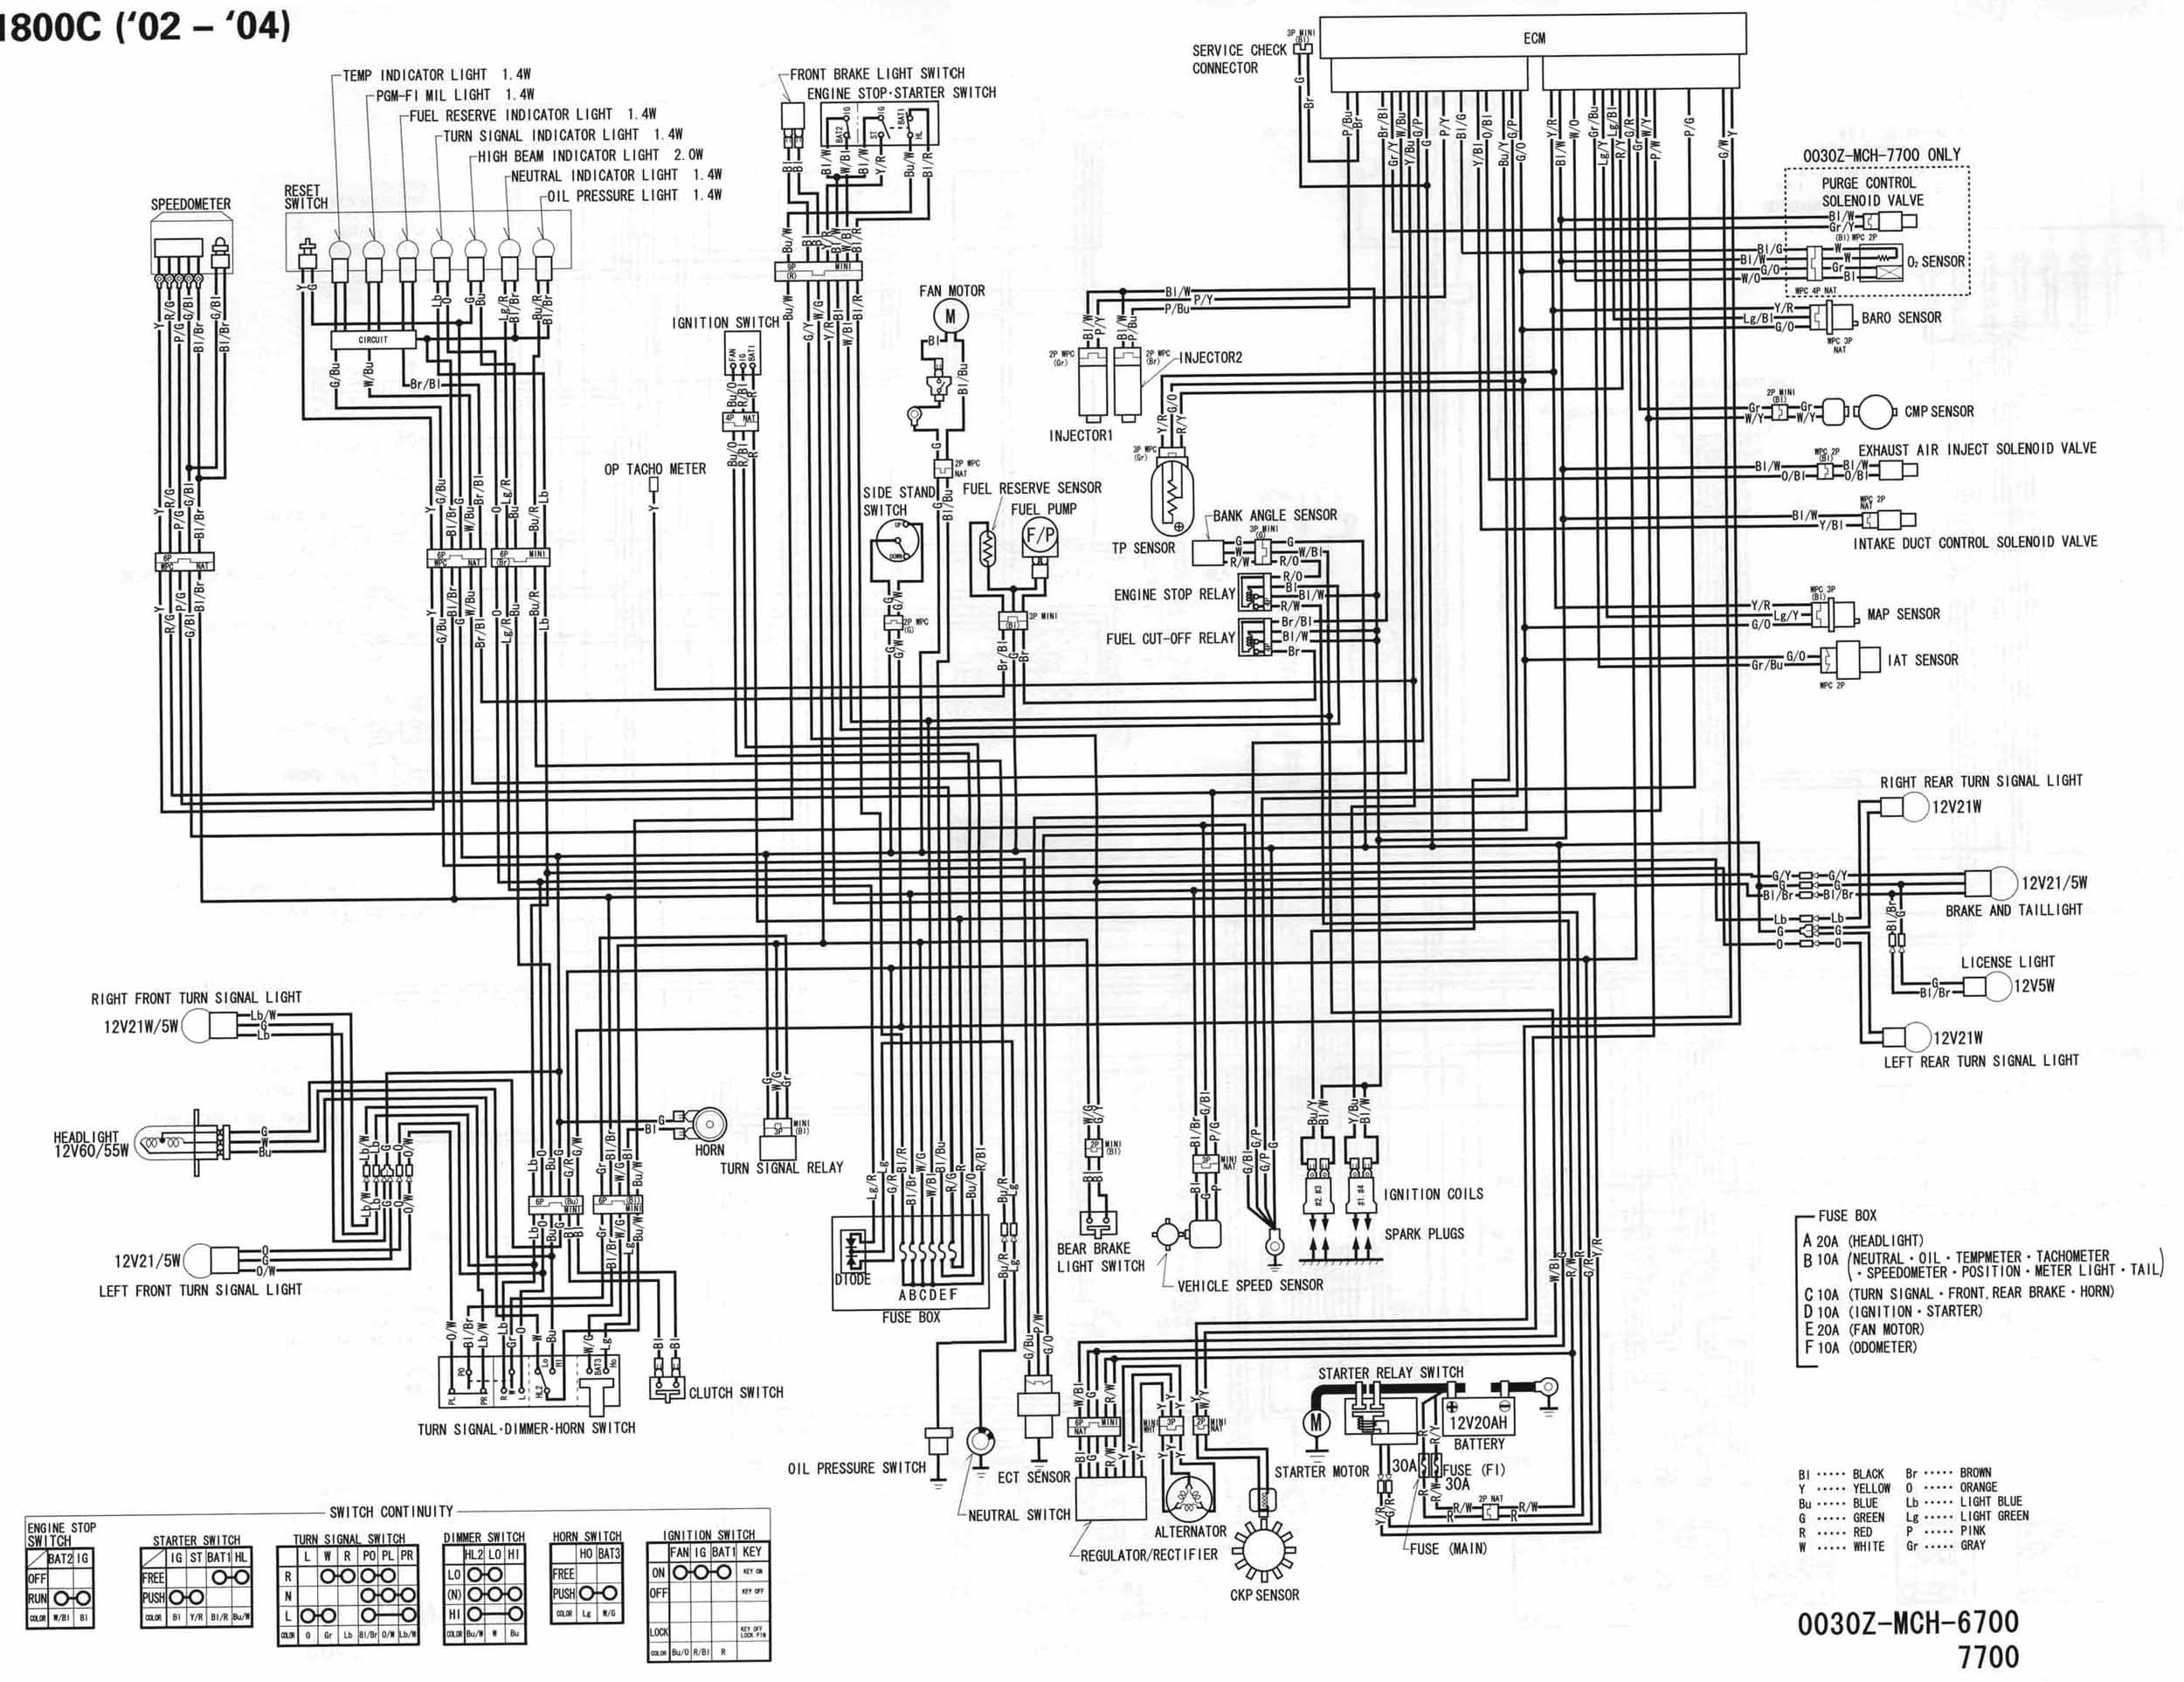 02 04_VTX1800_C_schematic motorcycle wire schematics bareass choppers motorcycle tech pages tachometer wiring diagram for motorcycle at gsmx.co